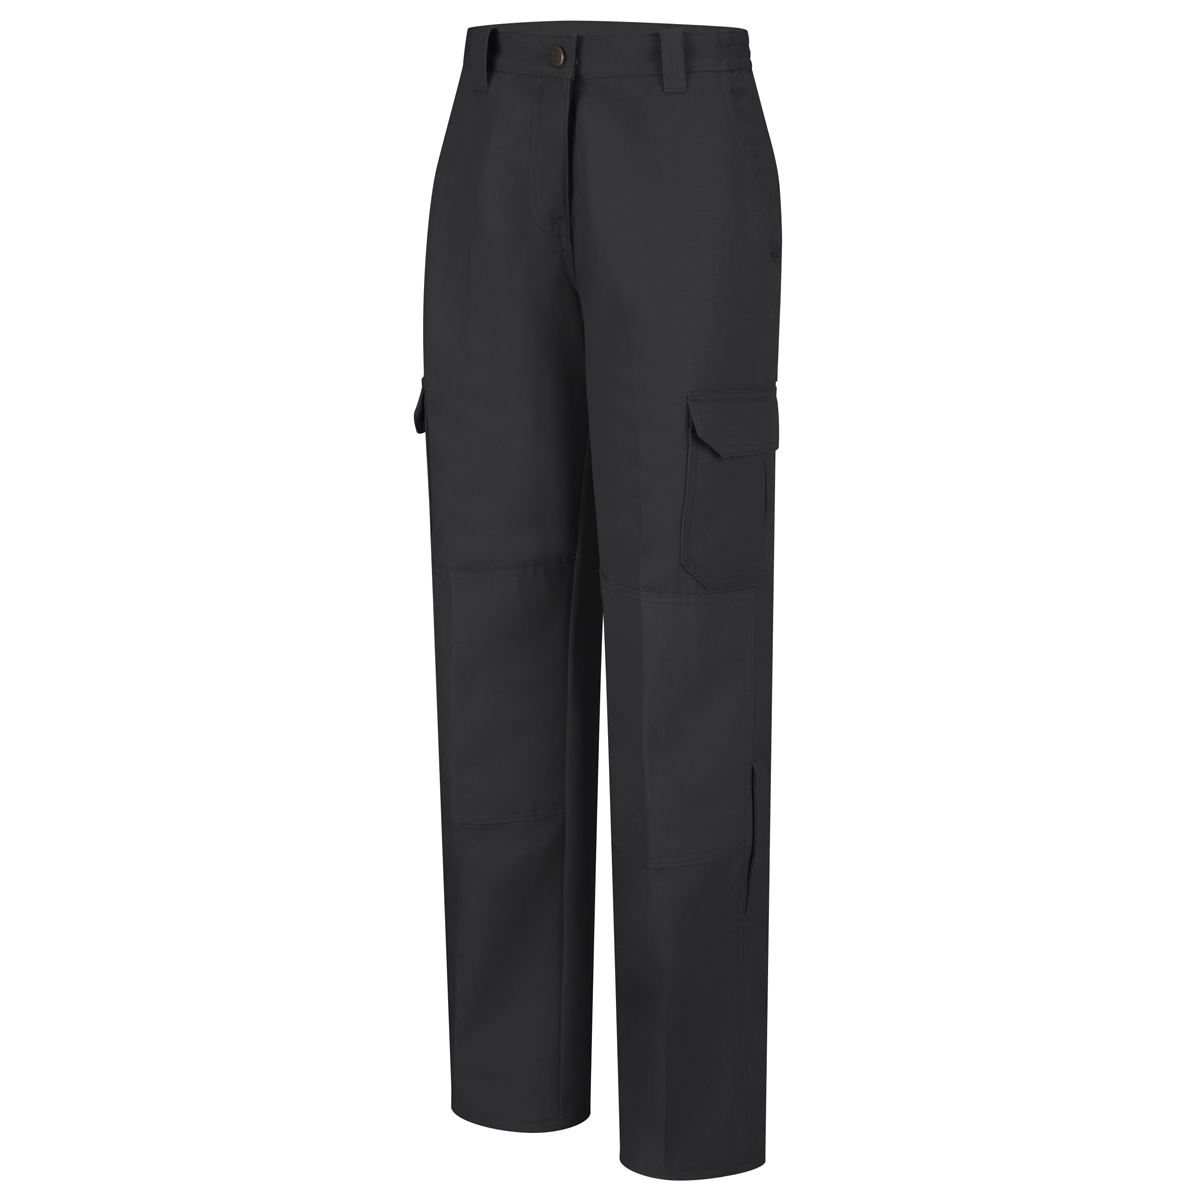 Fantastic Womens Black Cargo Pants Tall 1000 Ideas About Cargo Pants Women On